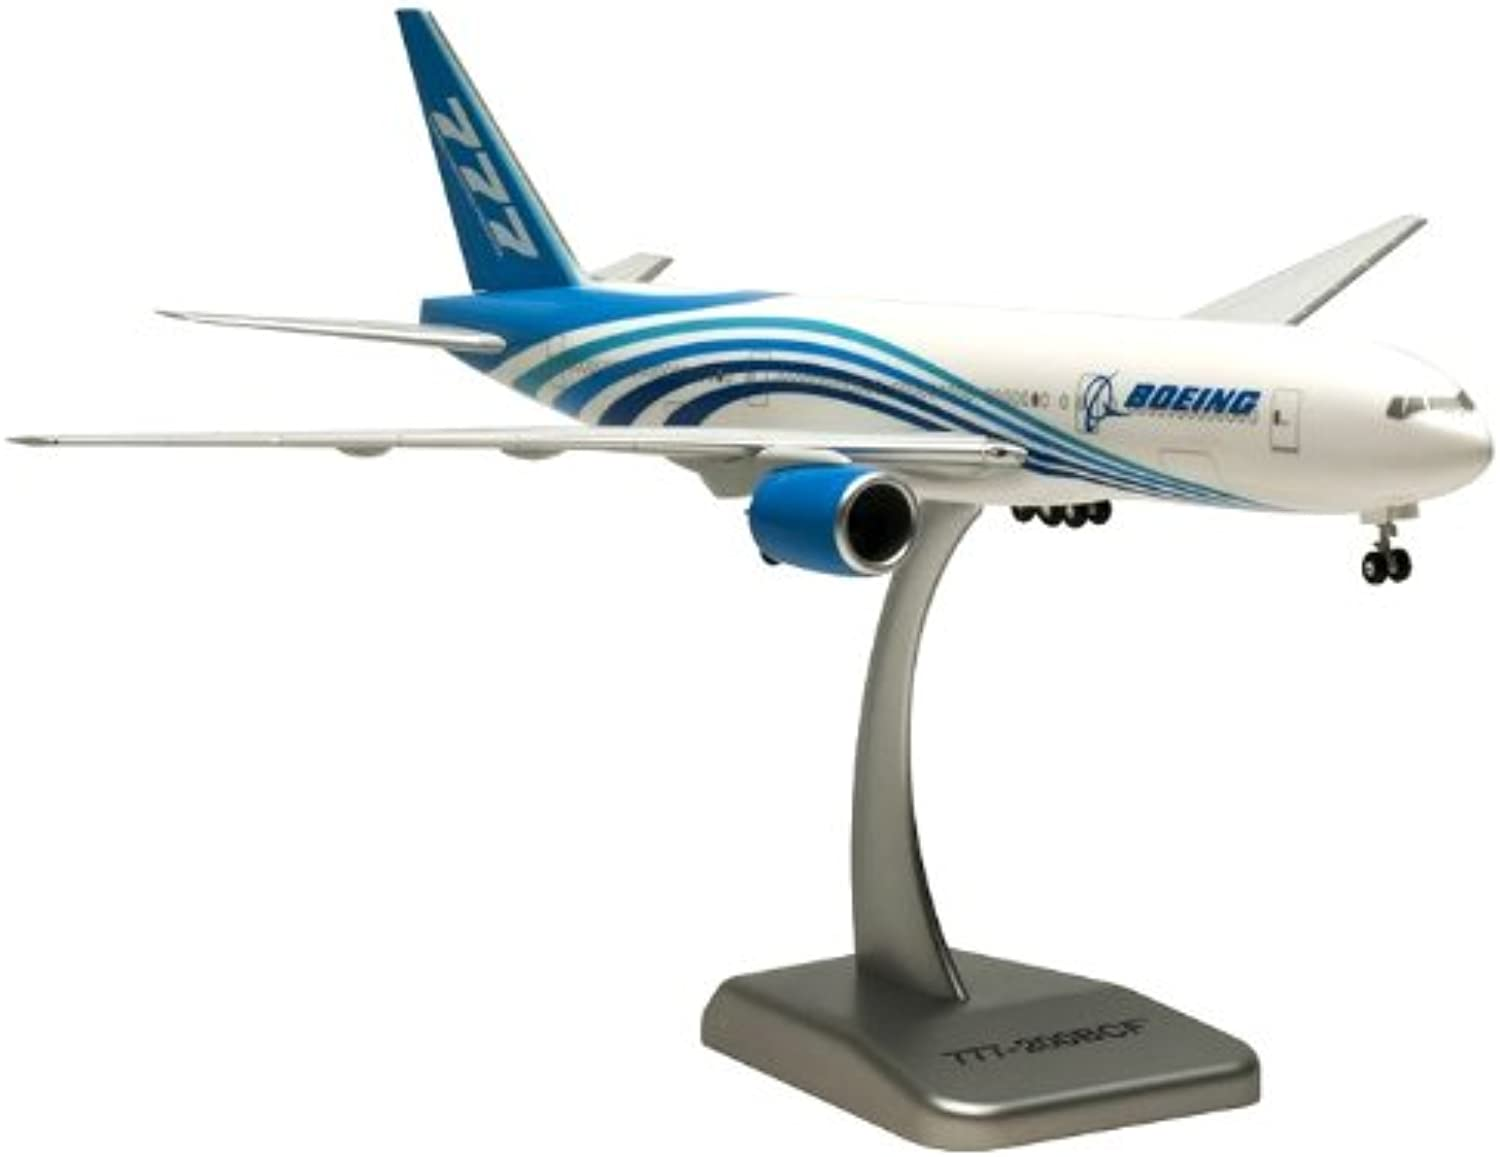 Daron Hogan Boeing 777200BCF Model Kit with Gear, 1 200 Scale